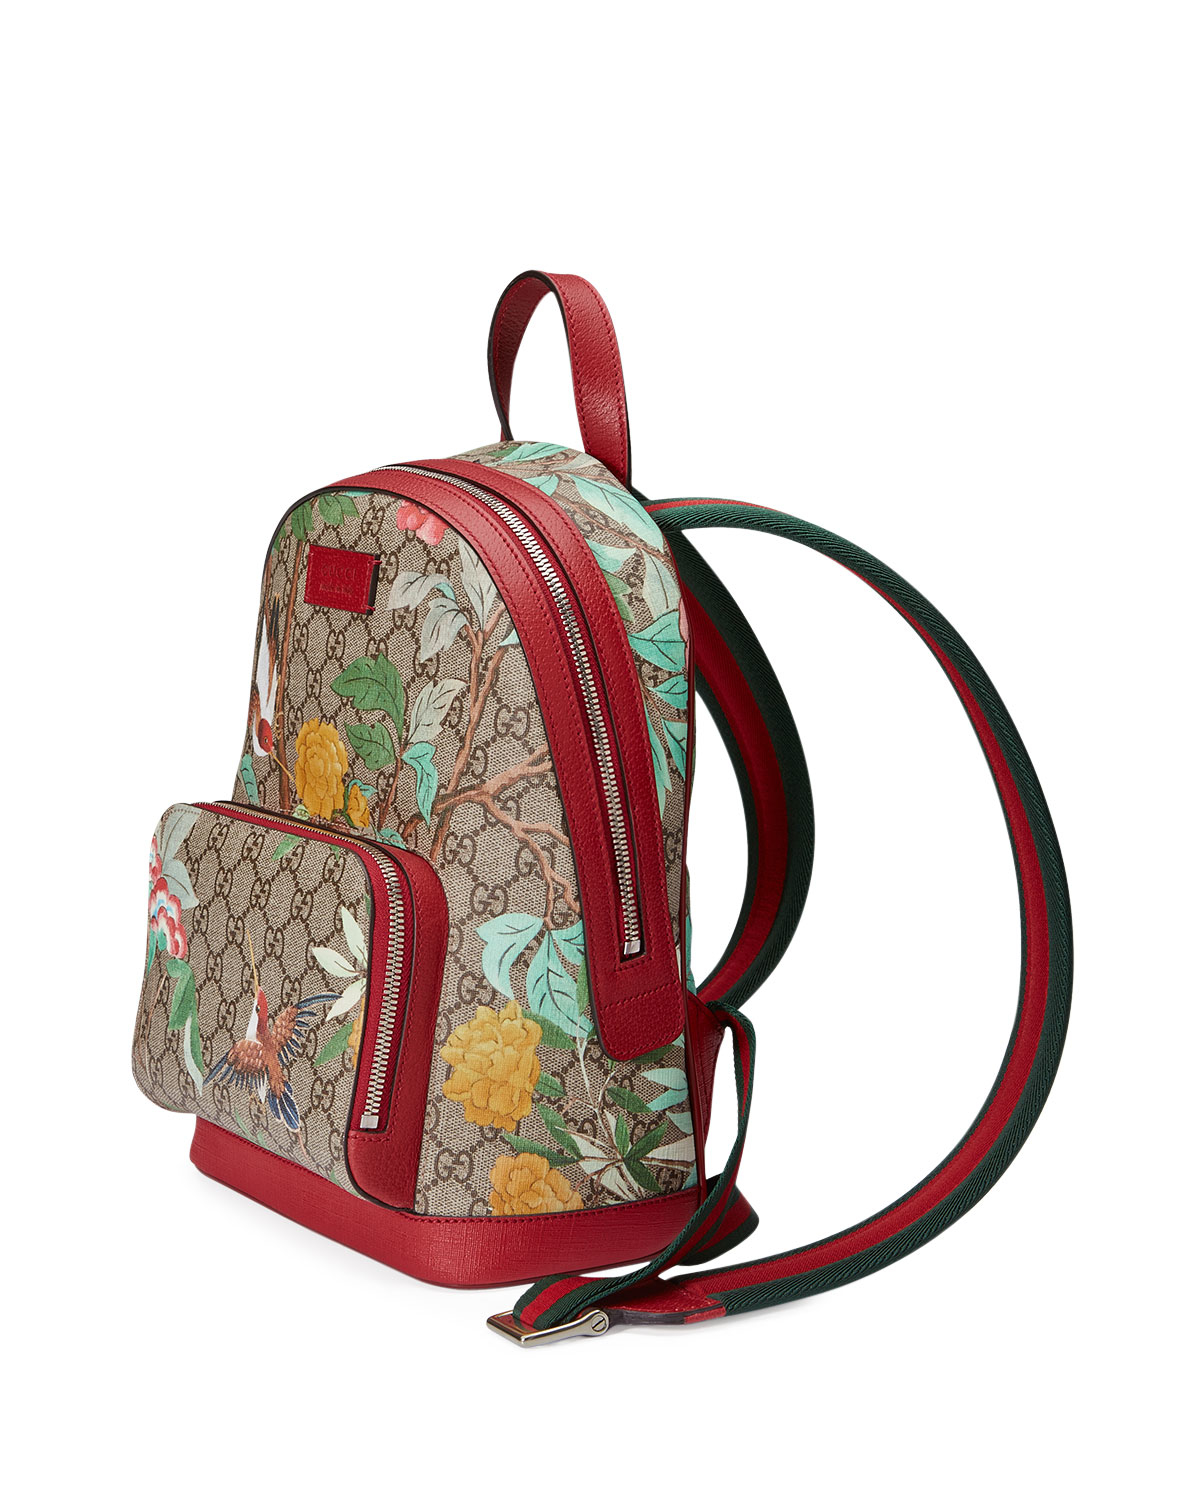 Gucci Gg Supreme Tian Canvas Backpack